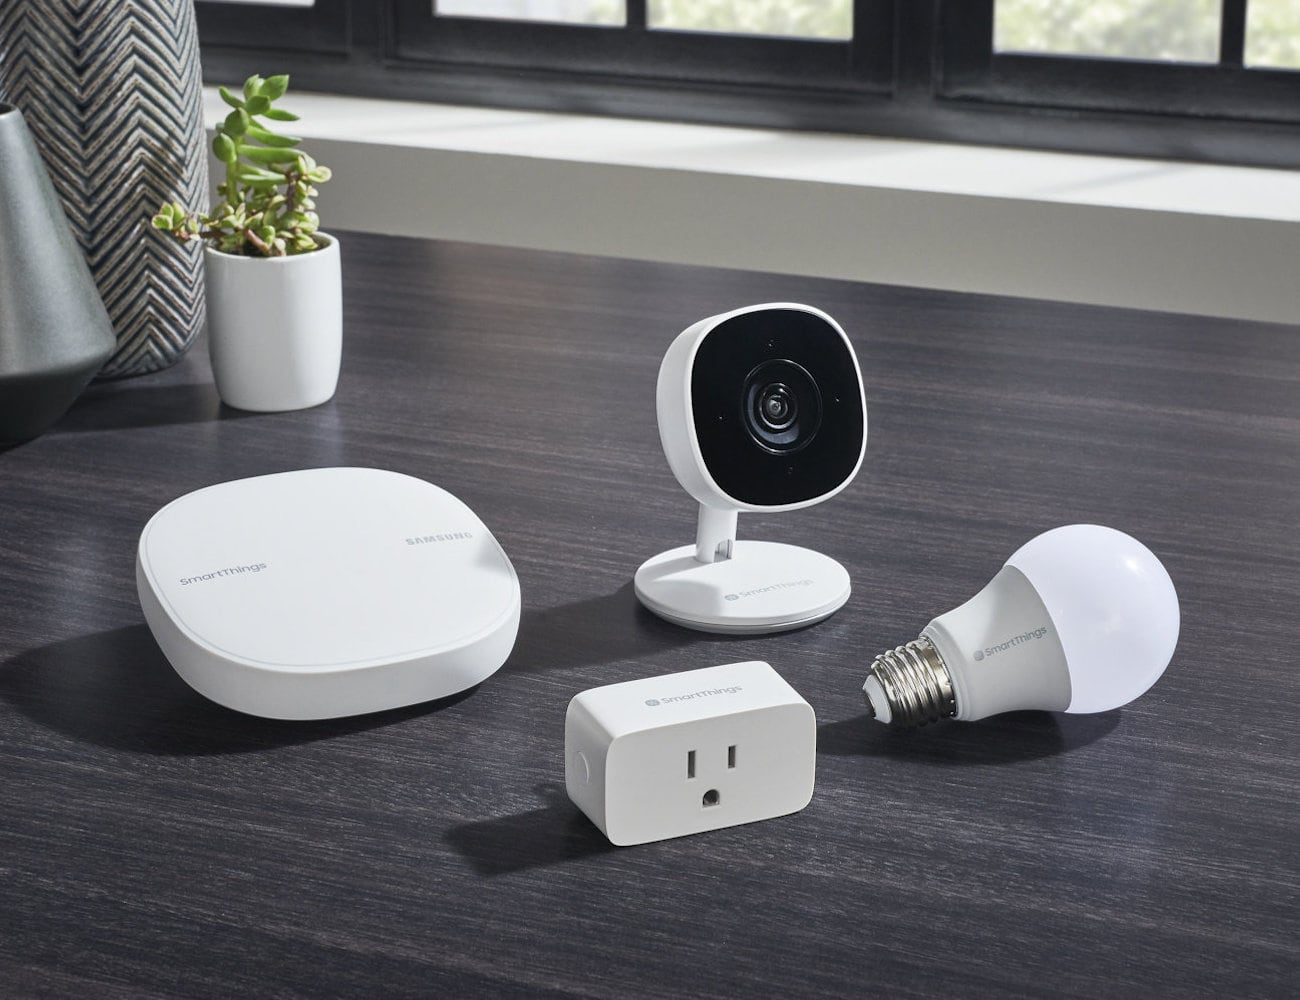 Samsung SmartThings Cam Full HD Monitoring Camera minimizes the risk of false triggers